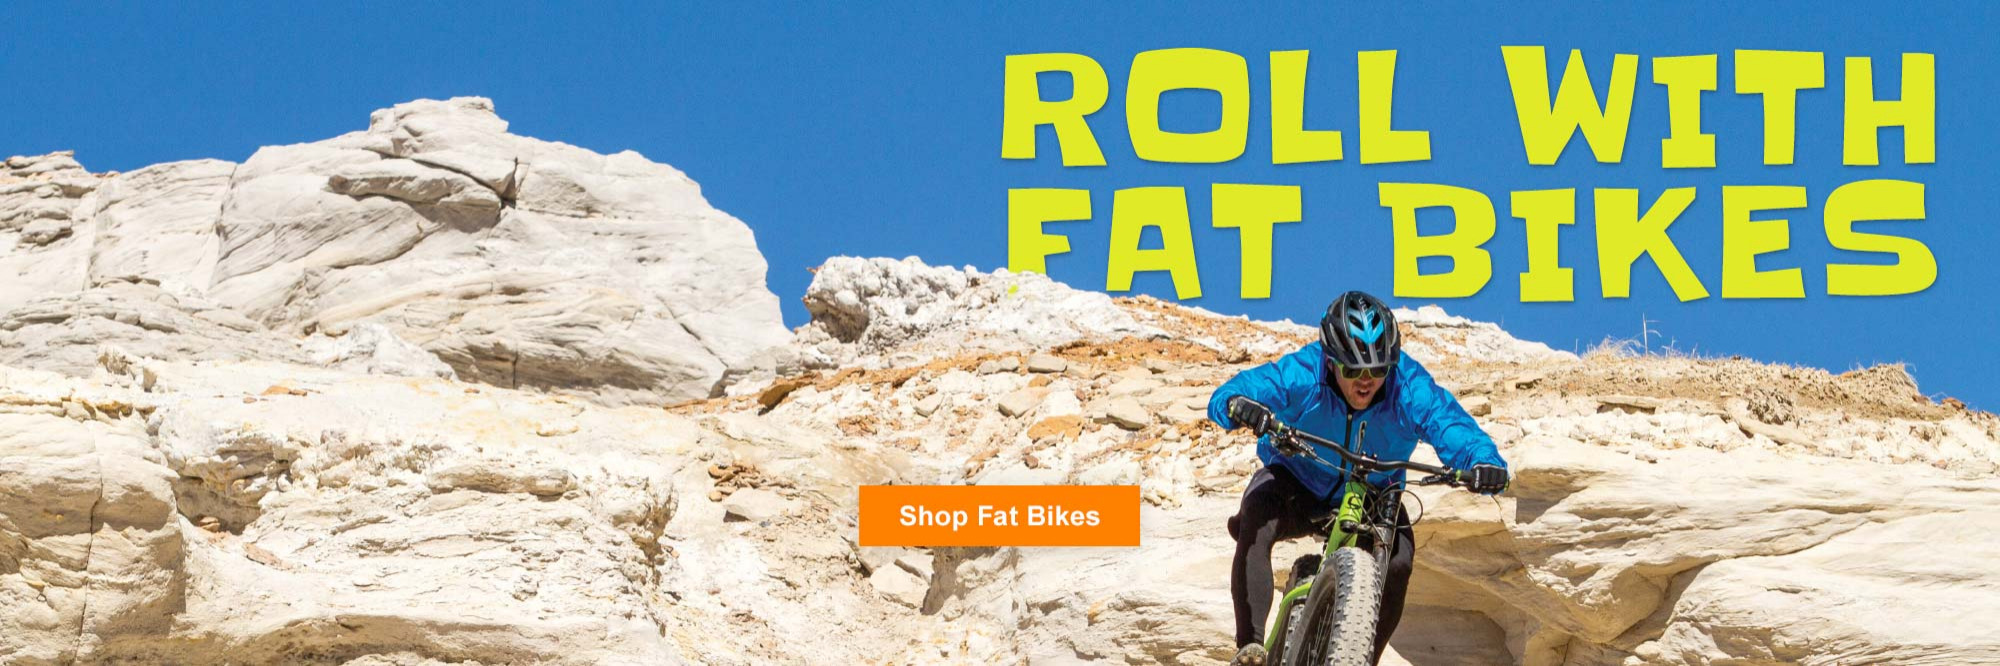 SAVE UP TO 31% on SELECT FAT BIKES